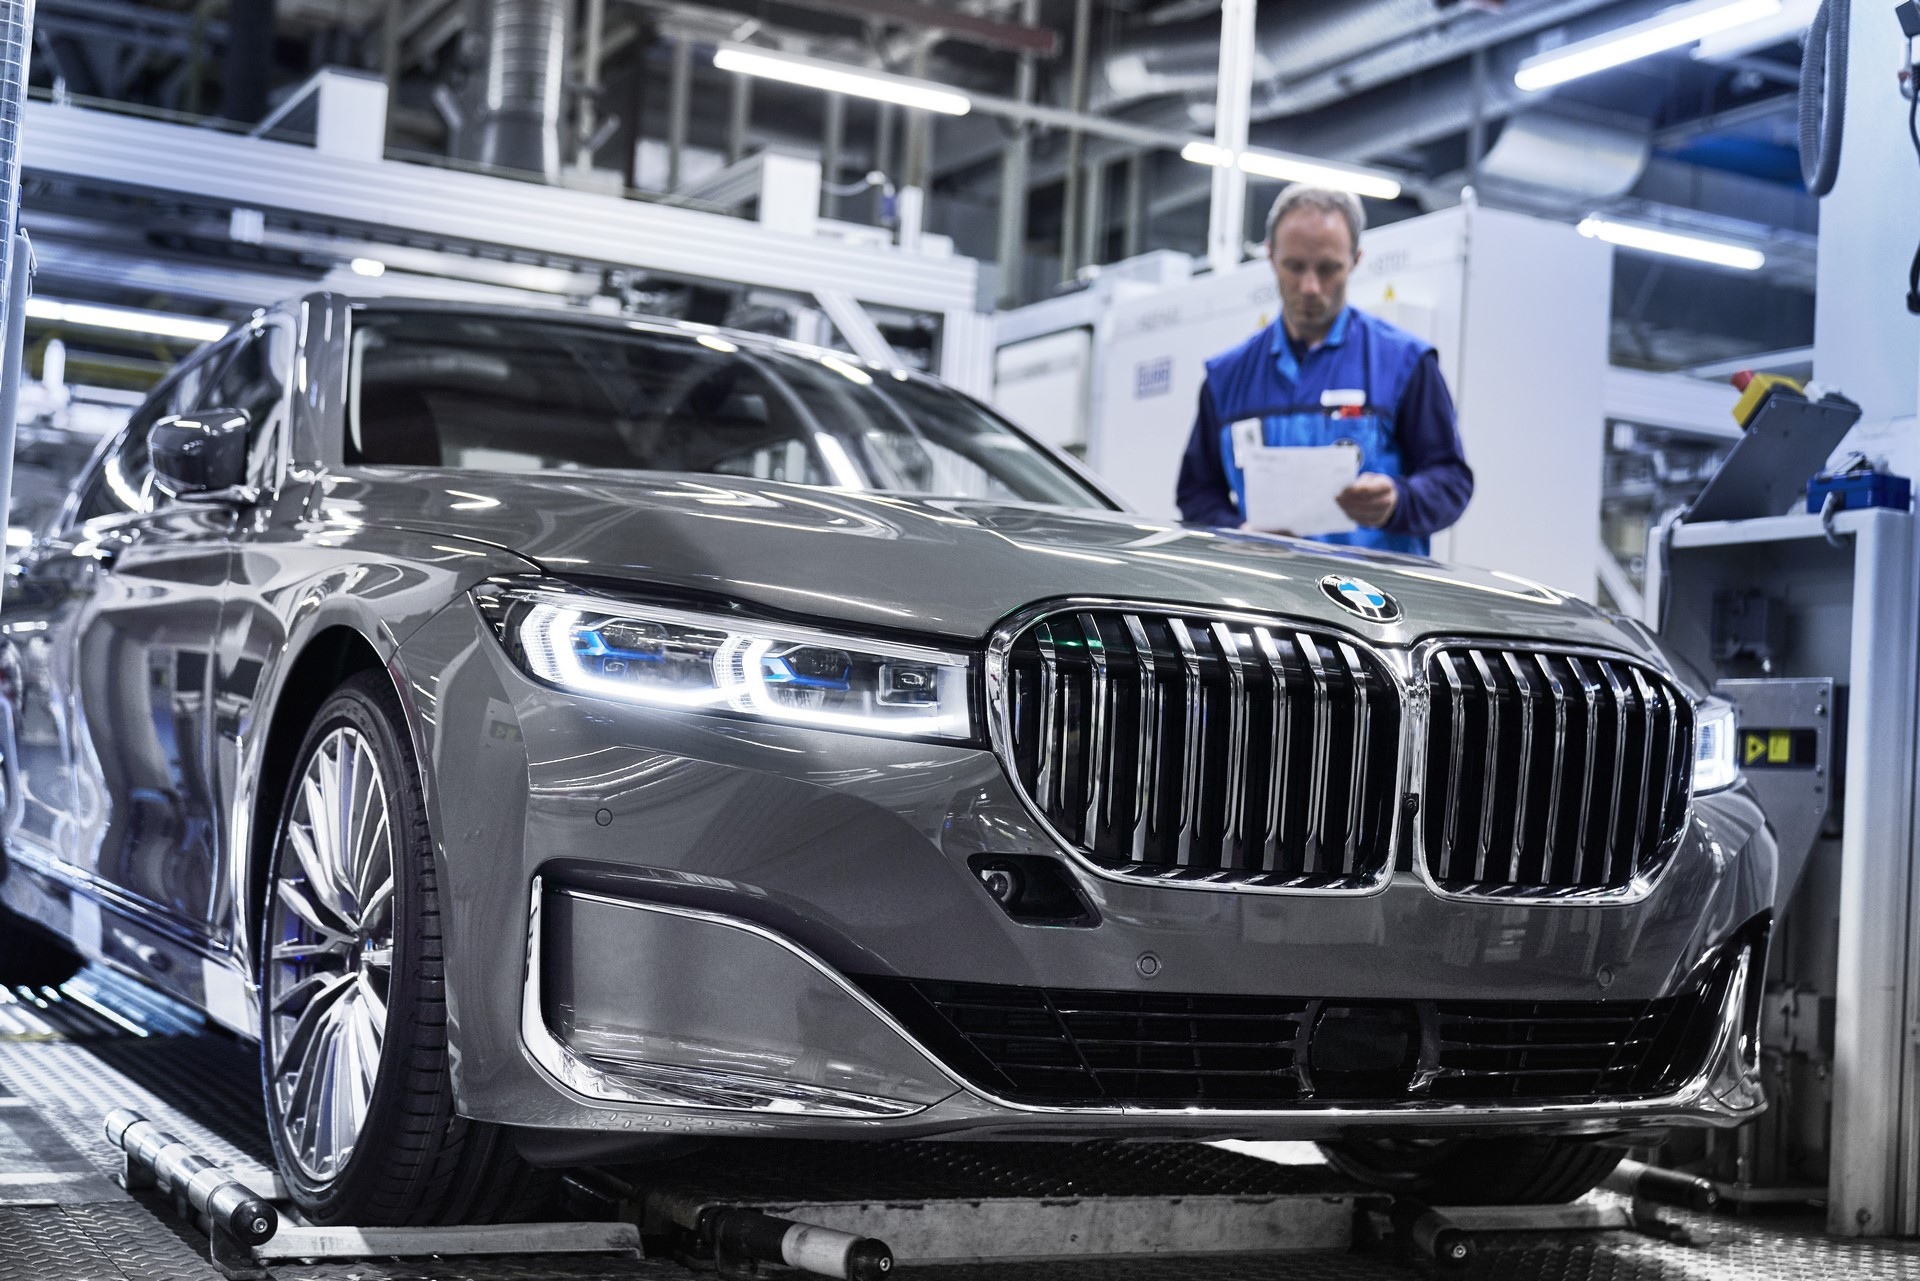 BMW 7-Series facelift production start plants (9)